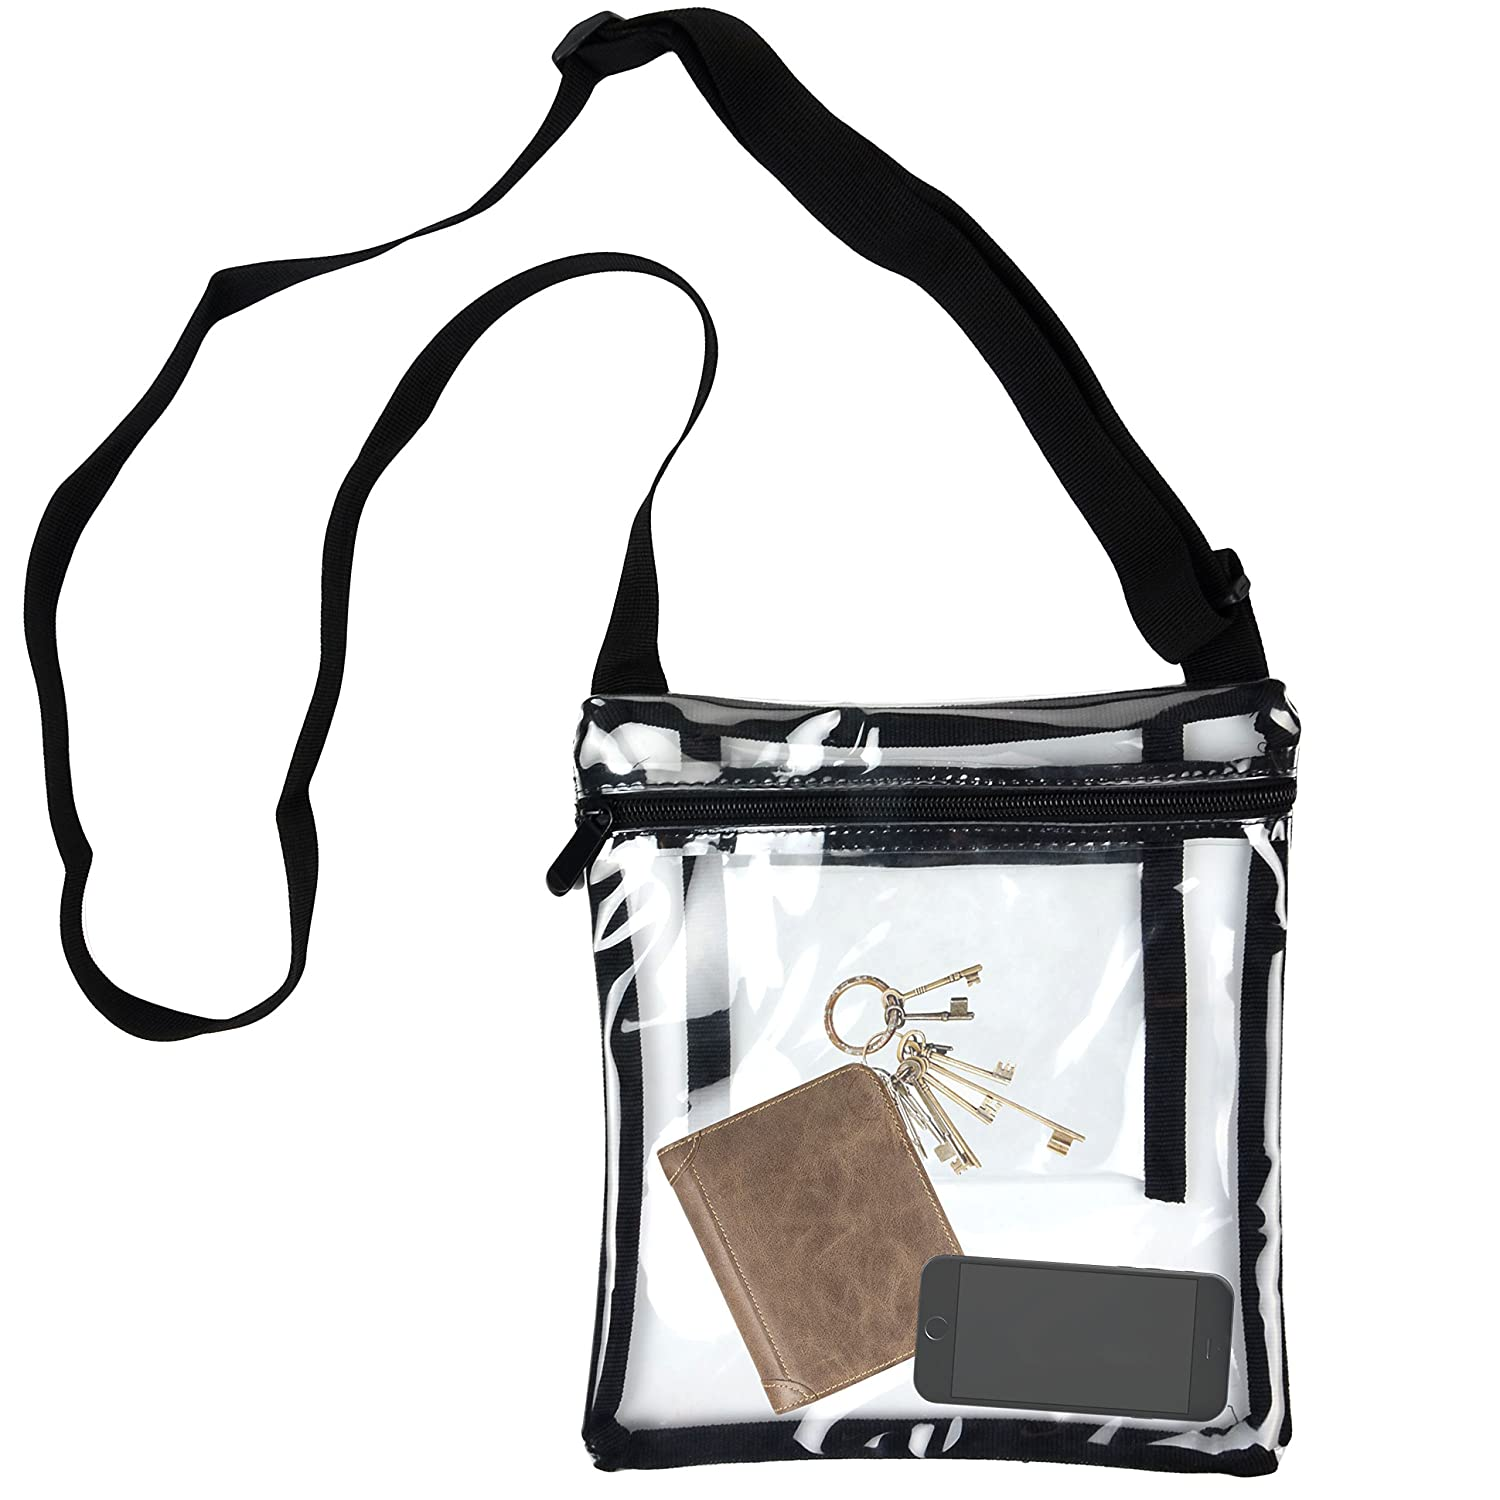 Youngever Clear Cross-Body Purse Stadium Approved Clear Vinyl Bag Extra Inside Pocket/… Adjustable Cross-Body Strap